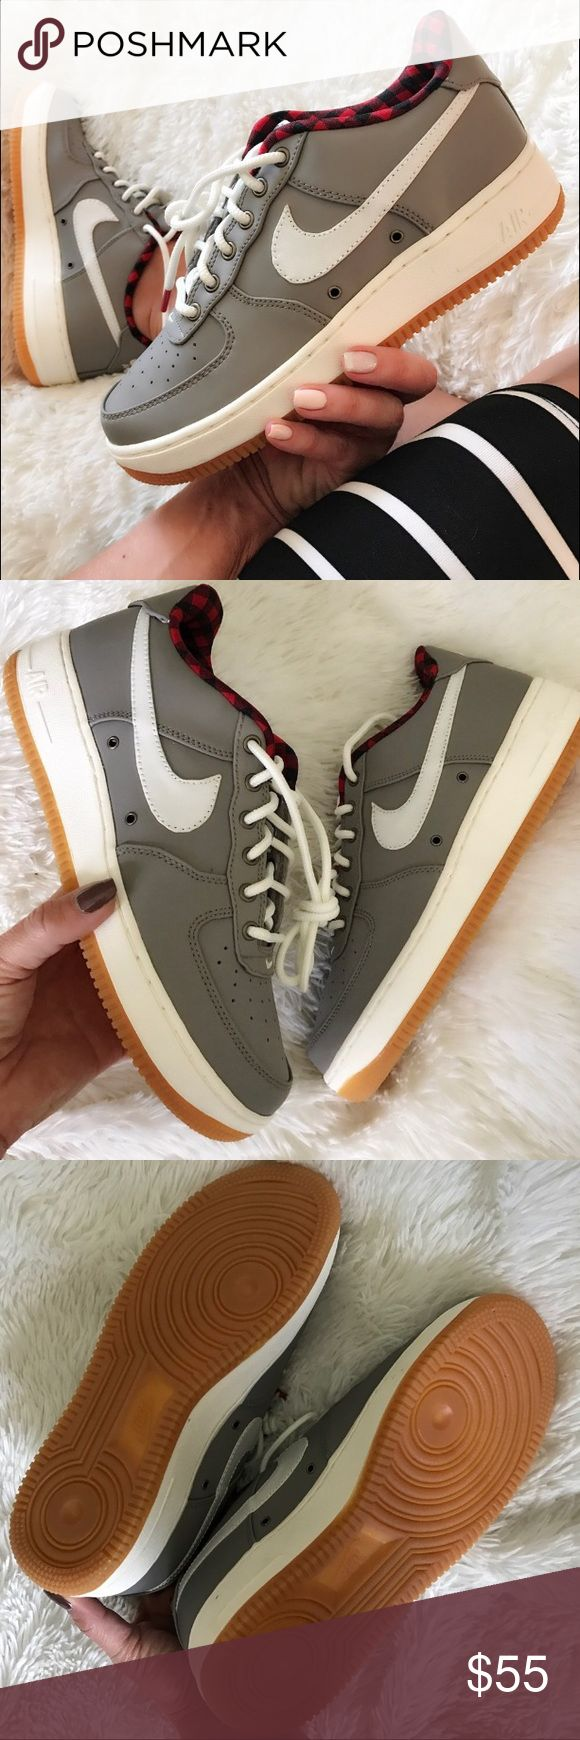 Nike Air Force 1 lv8 gray red womens size 8 shoes Shoes are a size 6.5 youth which is a women's size 8. I added a sizing chart for reference. No box Nike Shoes Sneakers